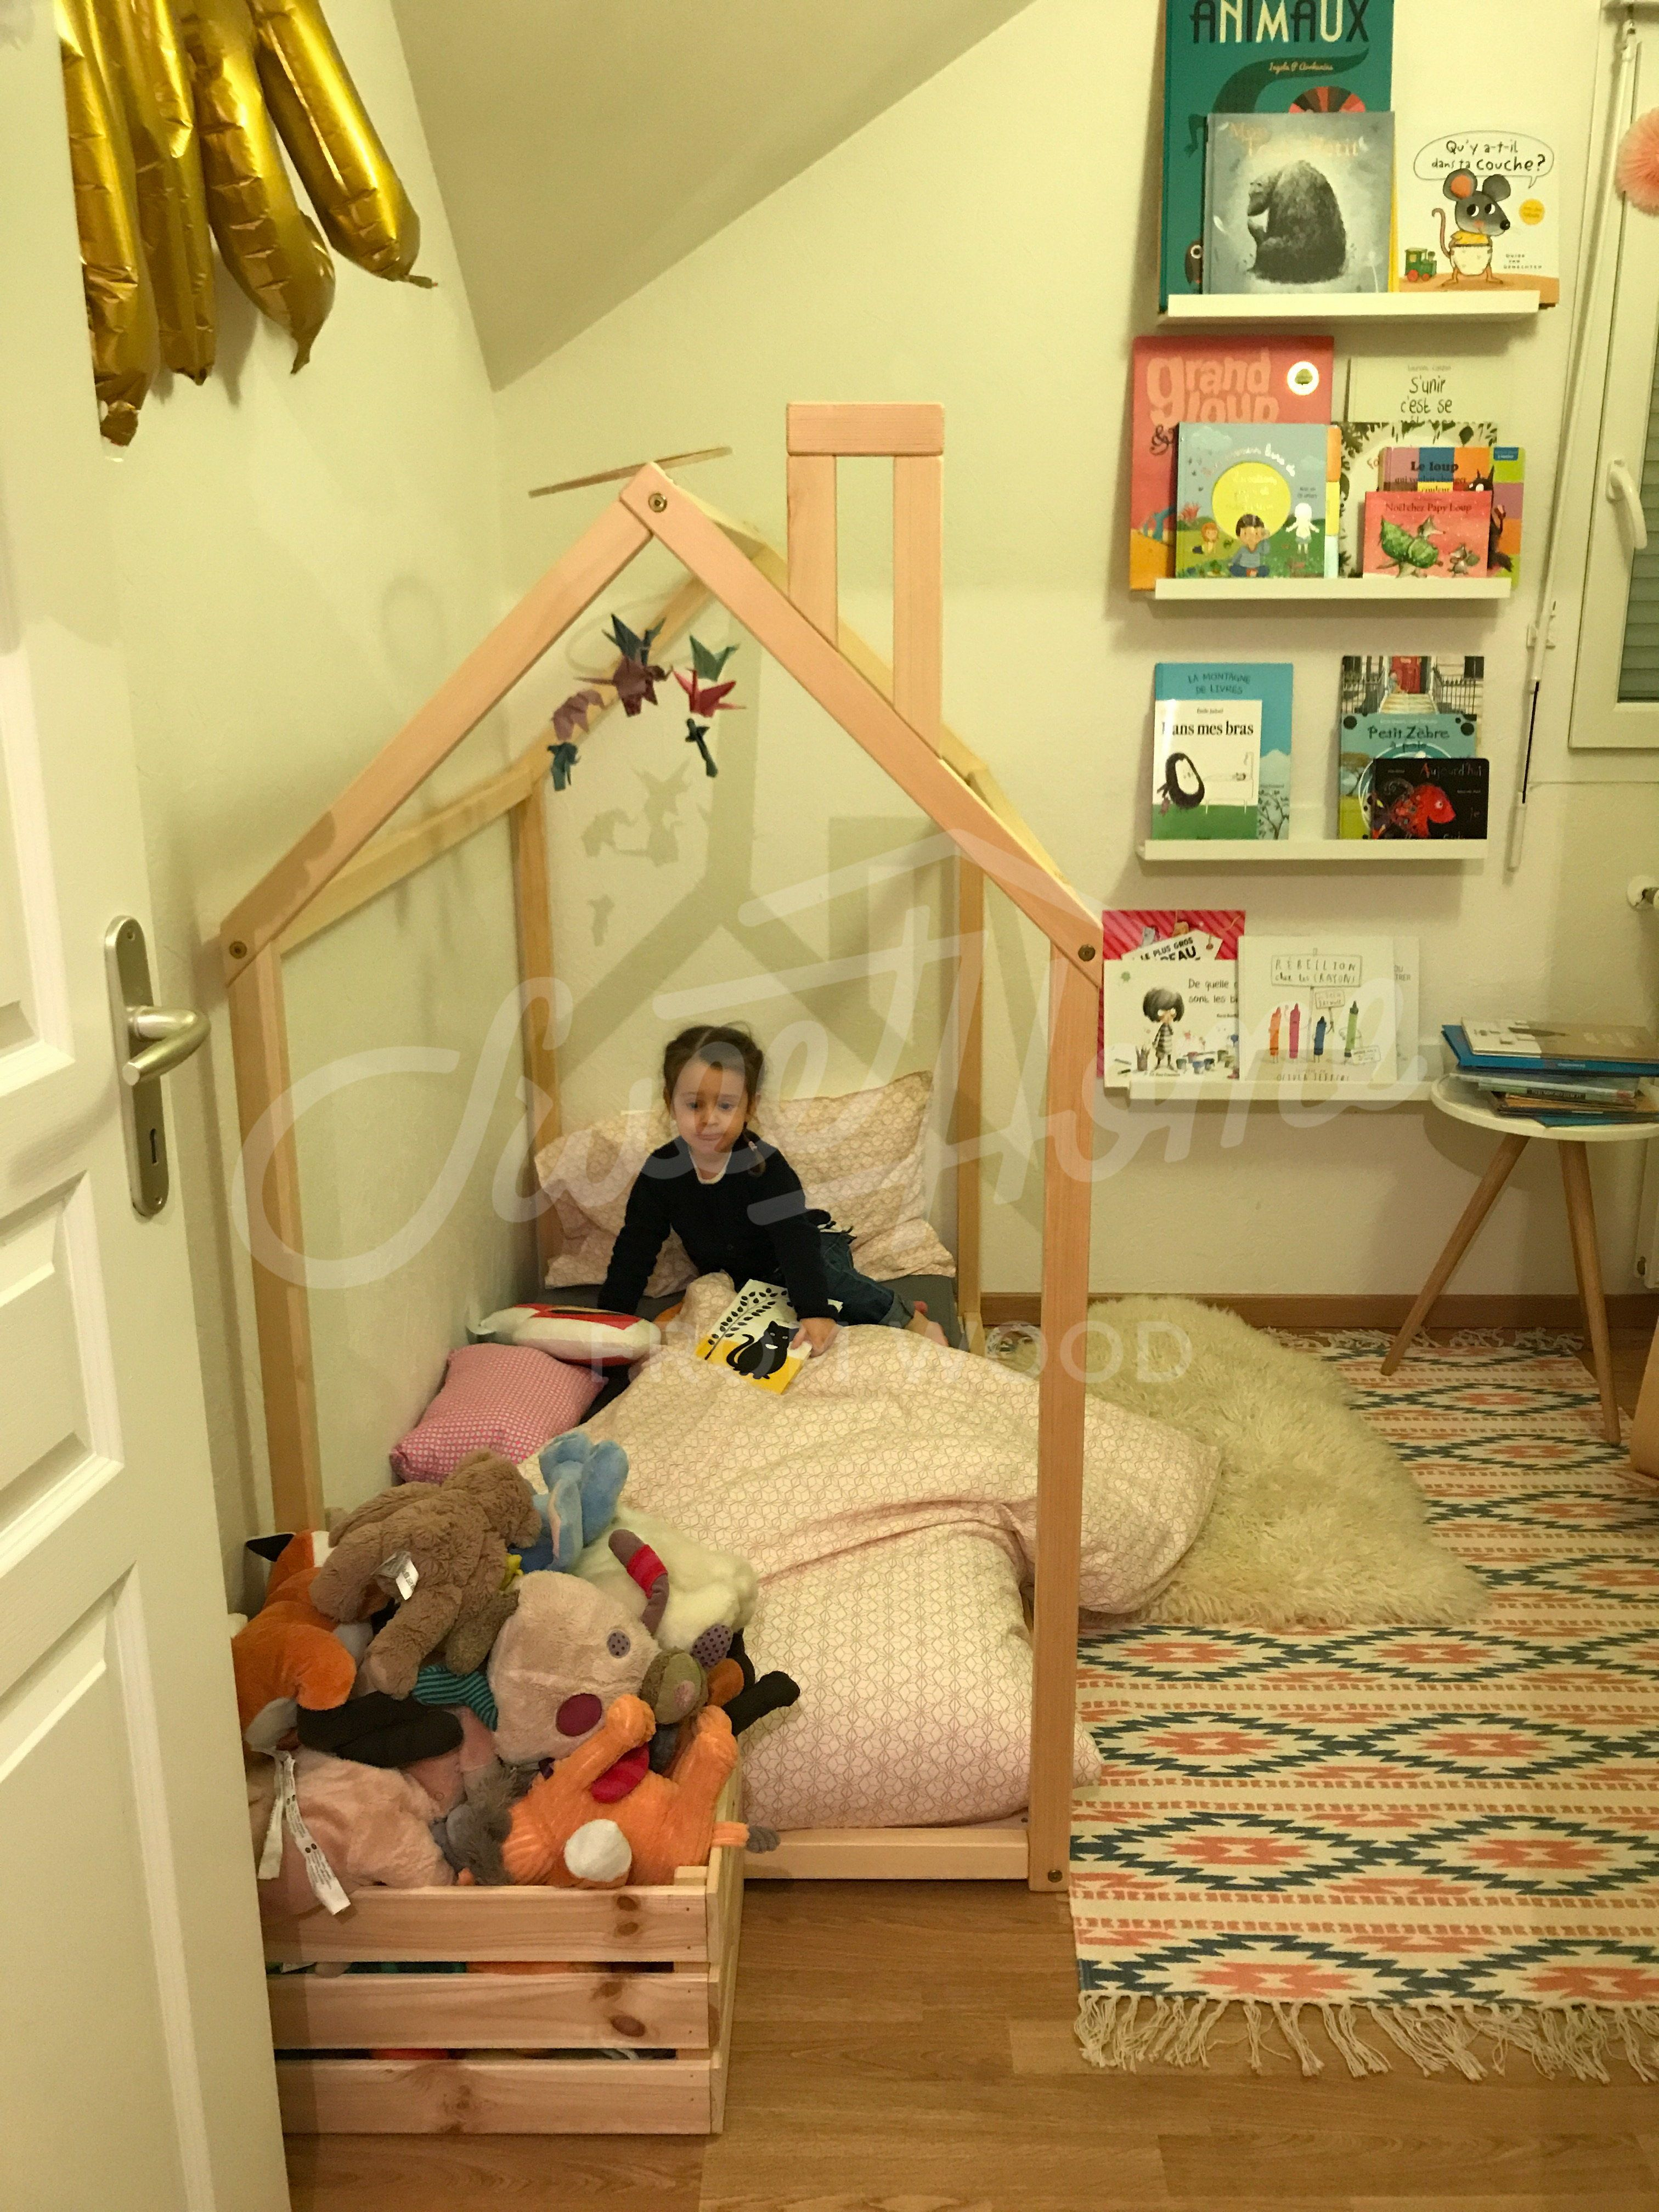 Toddler Bed House Bed Children Bed Wooden House Tent Bed Wood House Wood Nursery Kids Teepee Bed Wood Bed Frame Wood House Bed Kids Gift Kid Beds Bed Tent Kids Bed